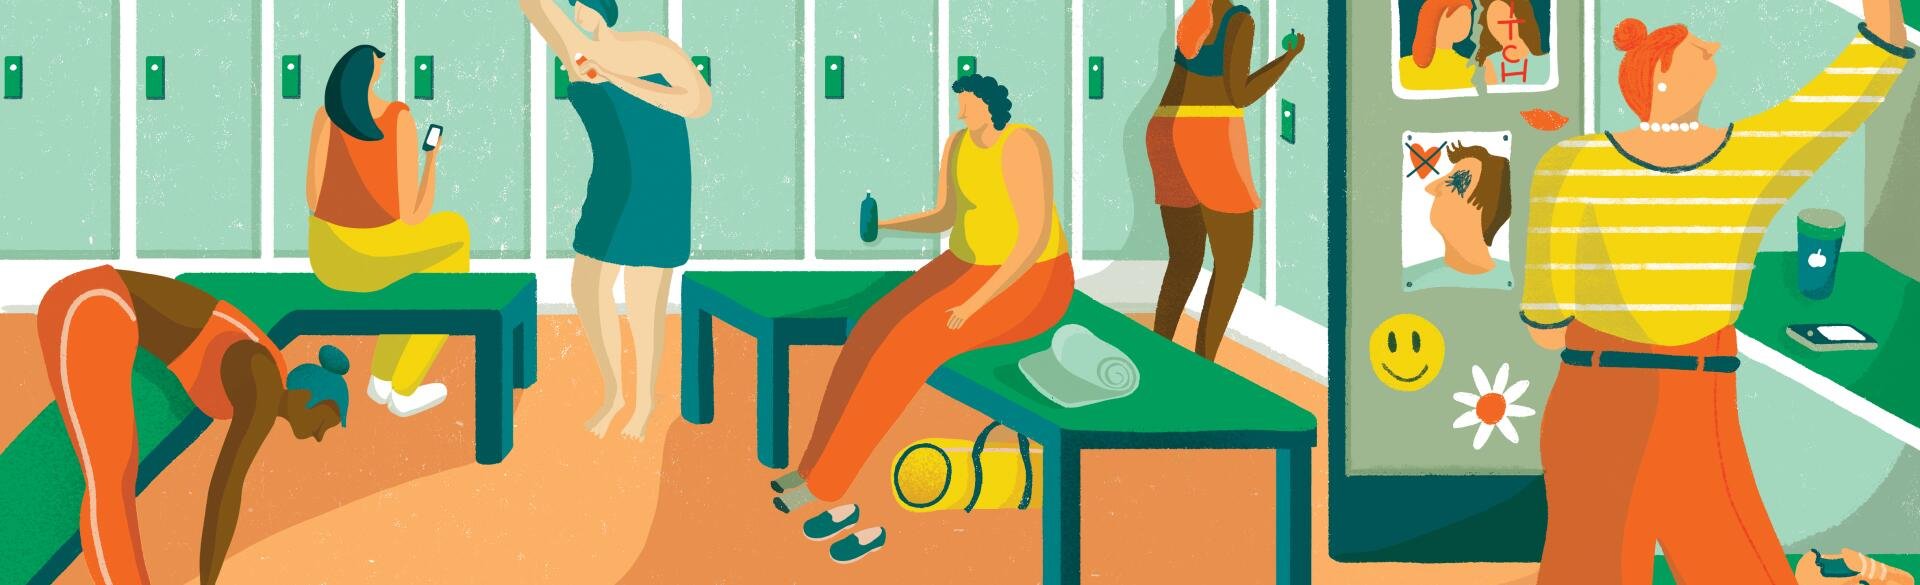 Illustration of women in a high school locker room